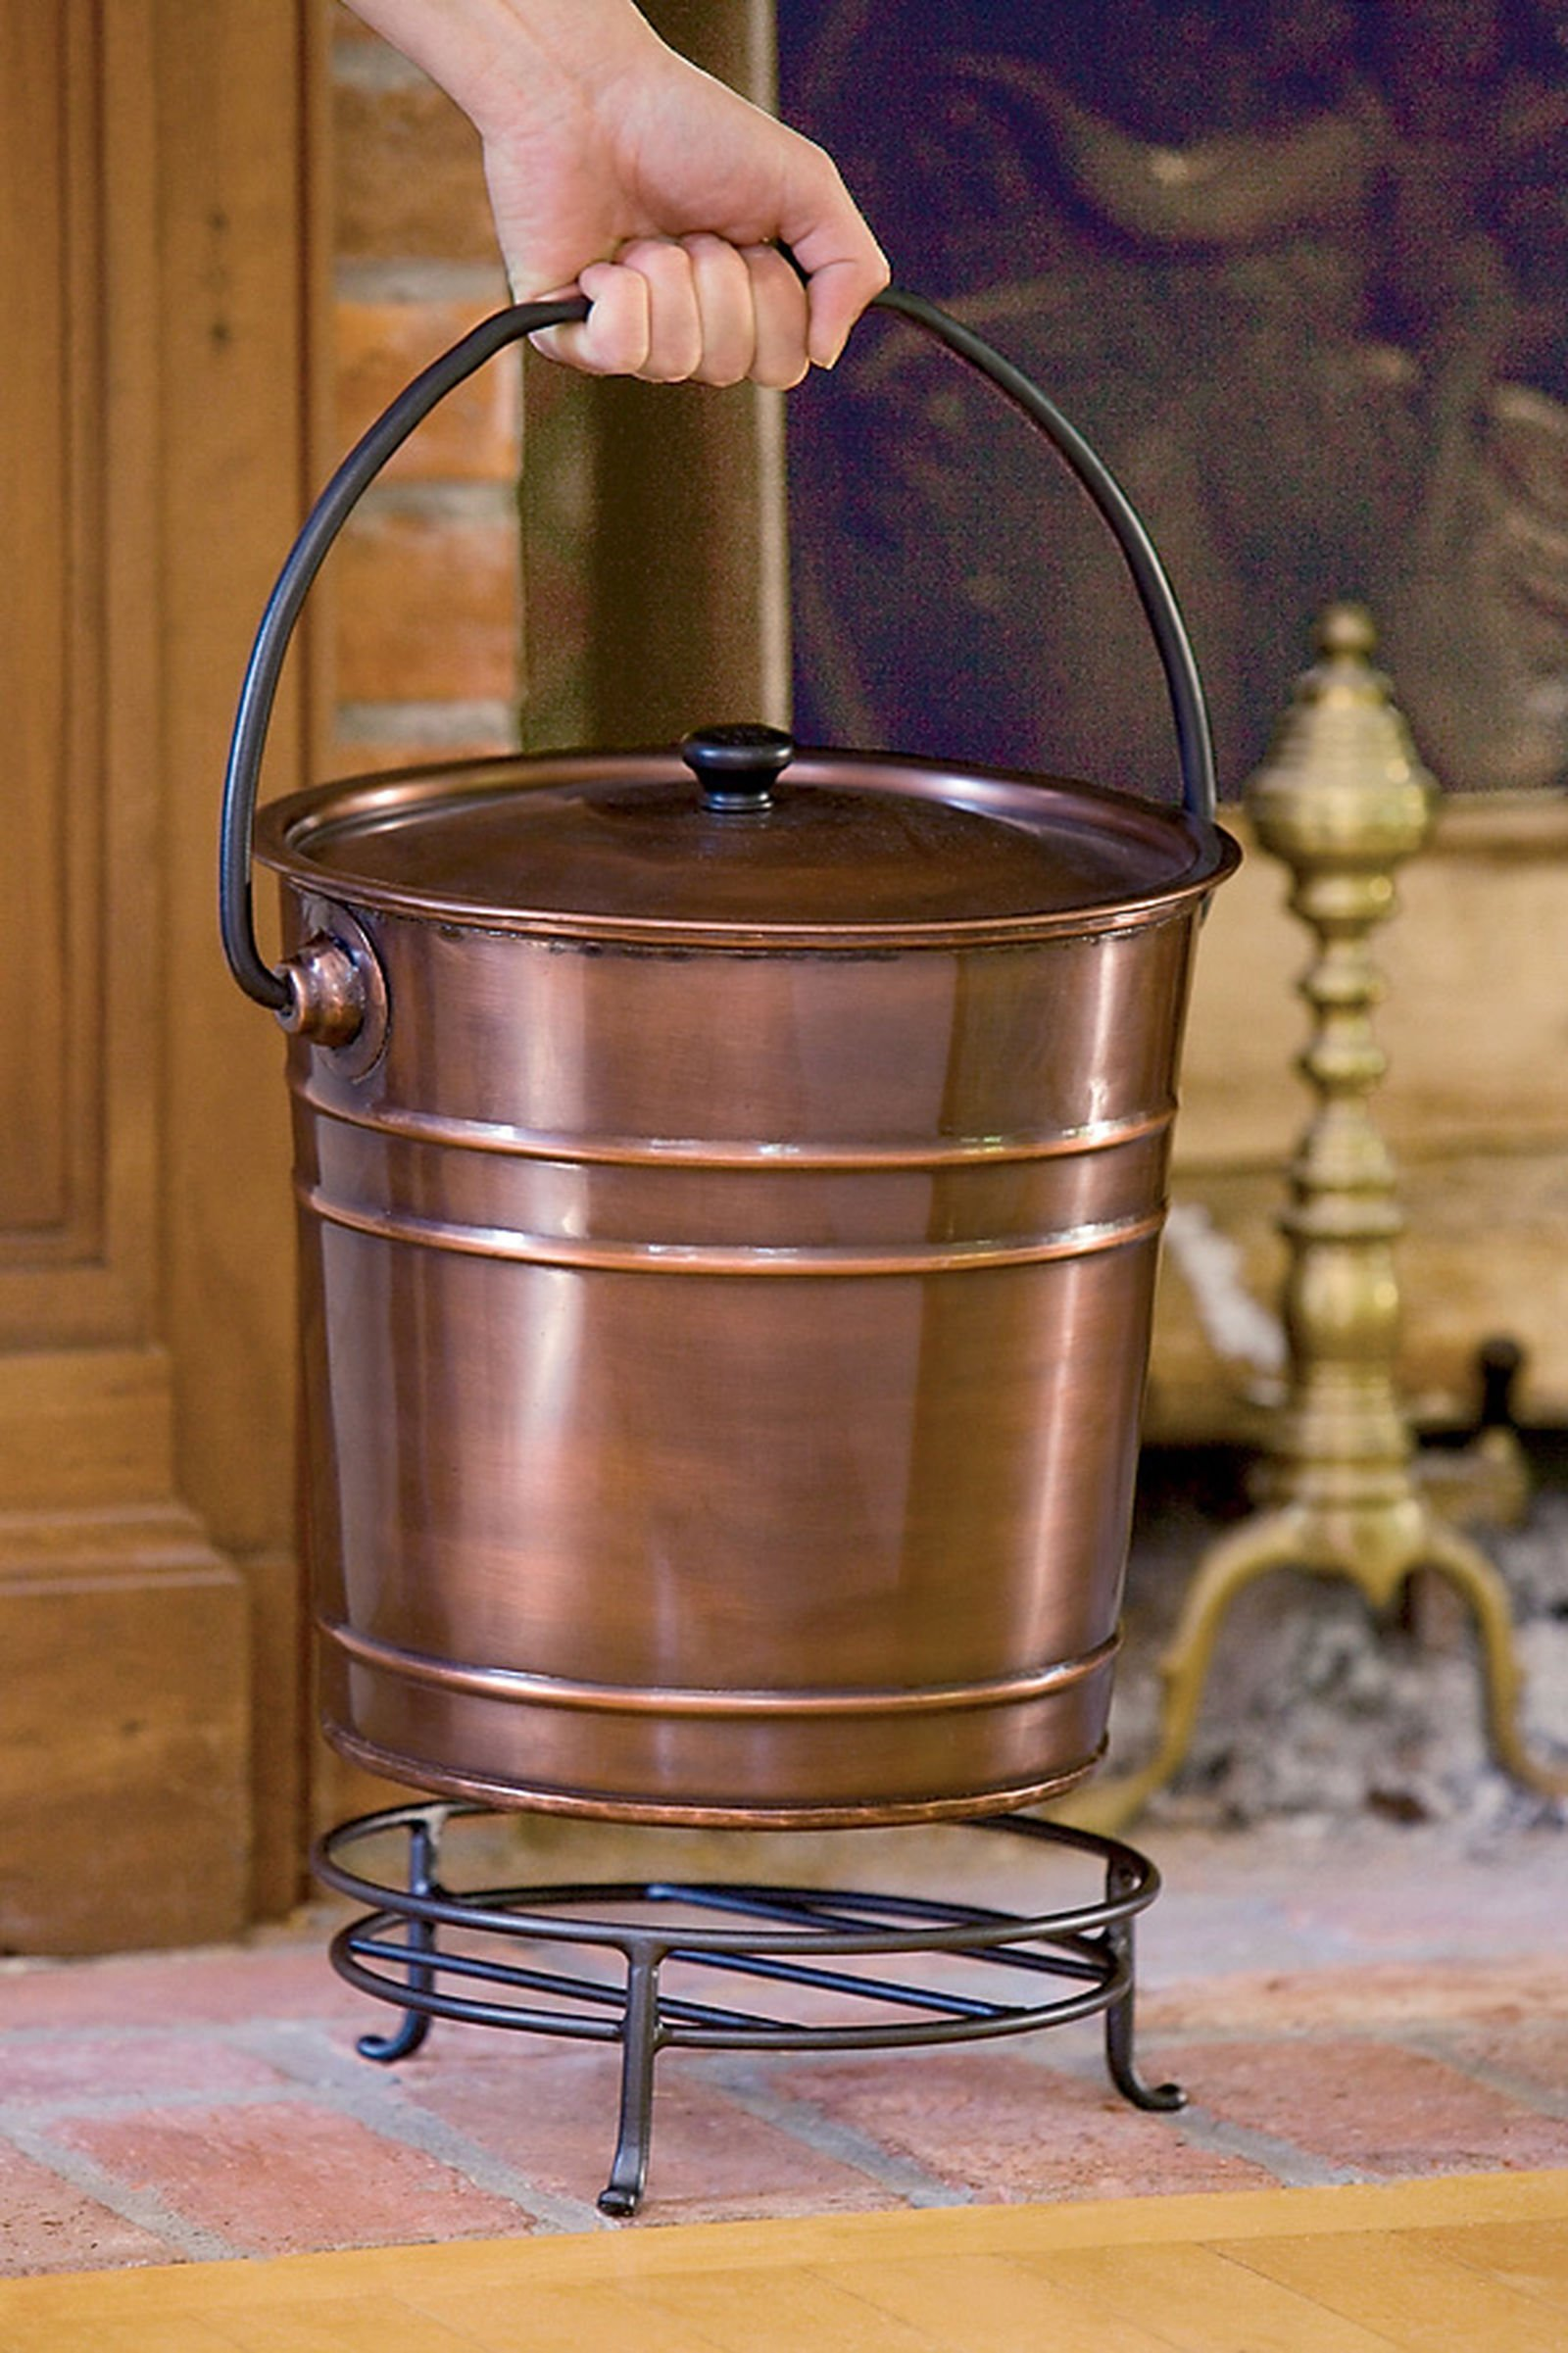 Gardener's Supply Company Steel Copper Finish Fireplace Ash Bucket with Floor Protection Stand, Holds 8 Quarts by Gardener's Supply Company